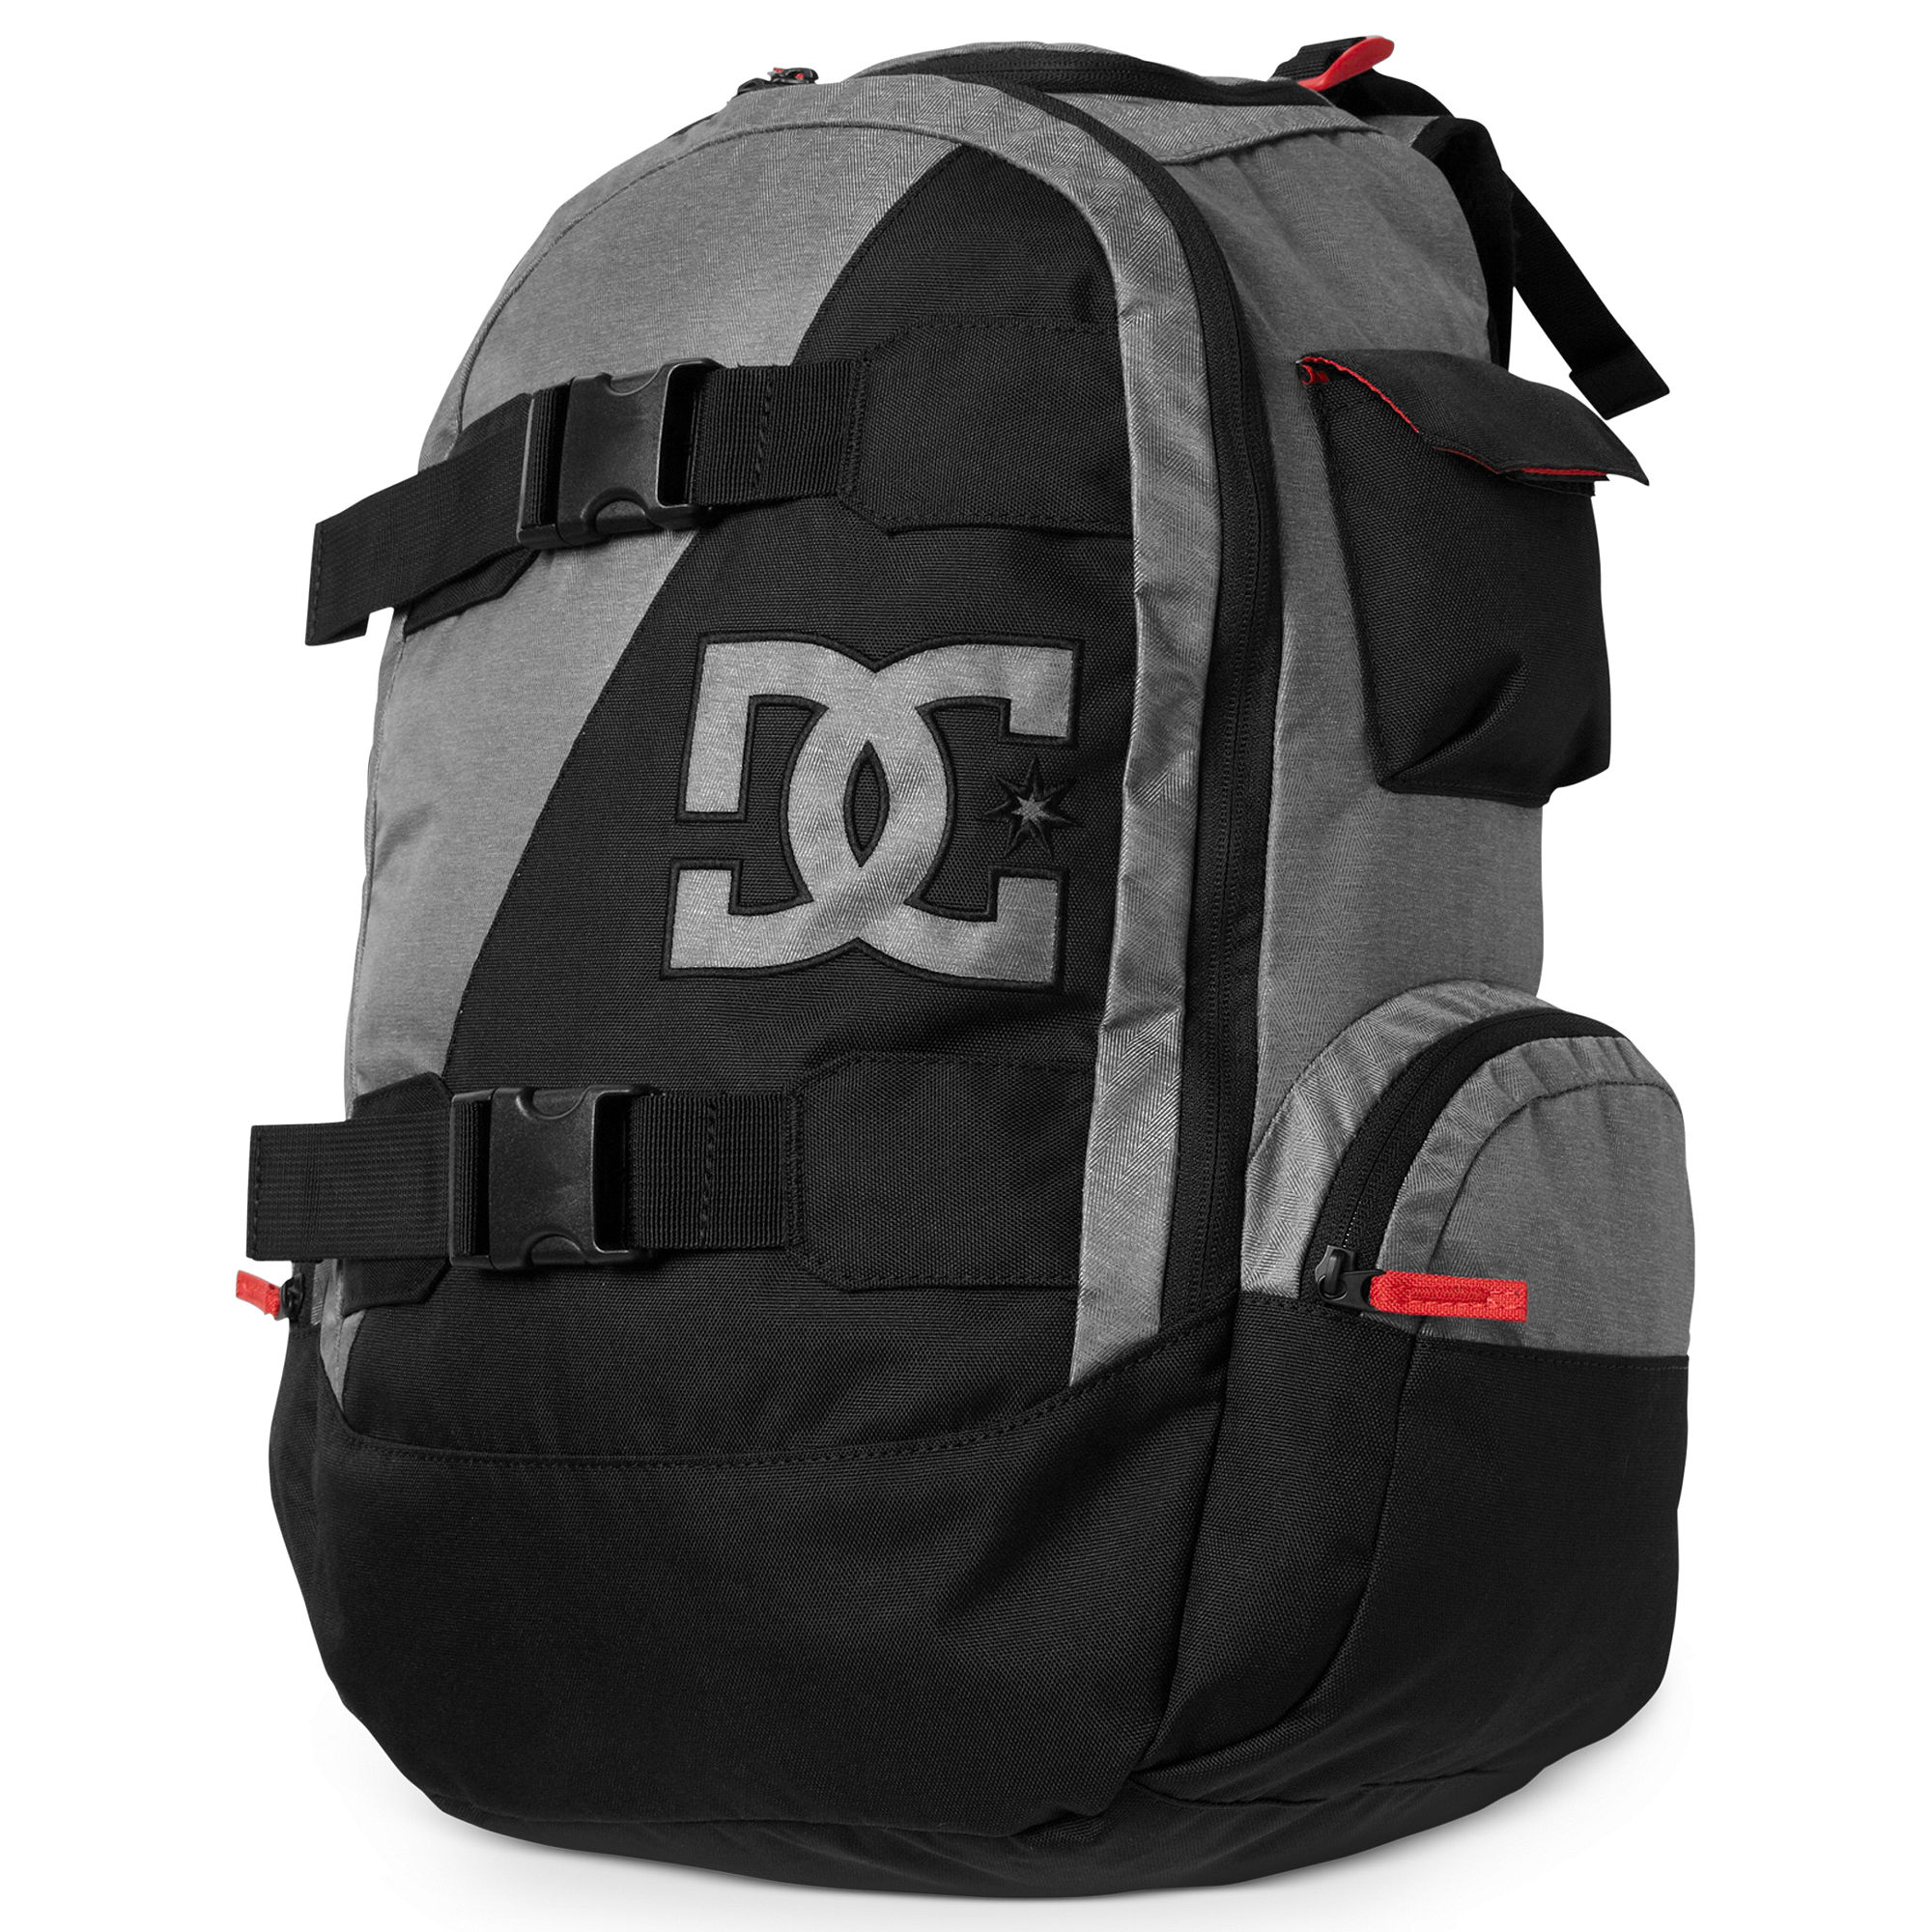 dc5c3c8f5e7 DC Shoes Wolfbred Backpack in Black for Men - Lyst